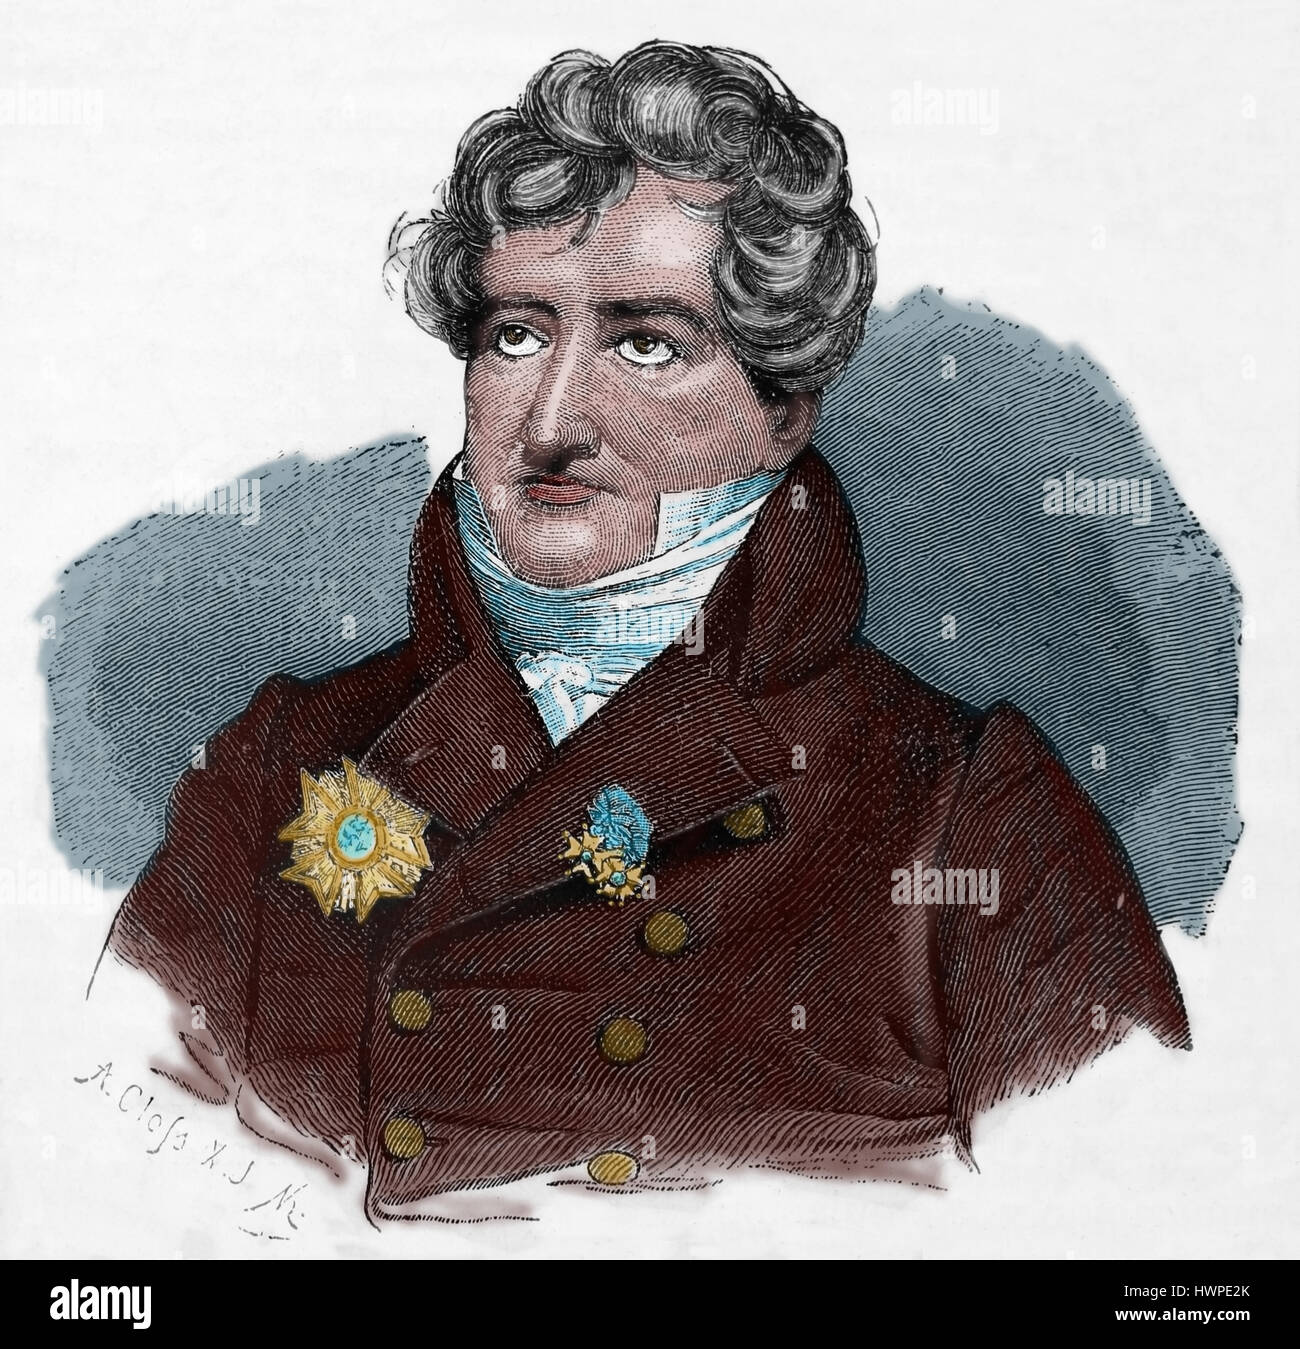 Georges Cuvier (1769-1832). French naturalist and zoologist. Portrait. Engraving, 1883. Colored. - Stock Image